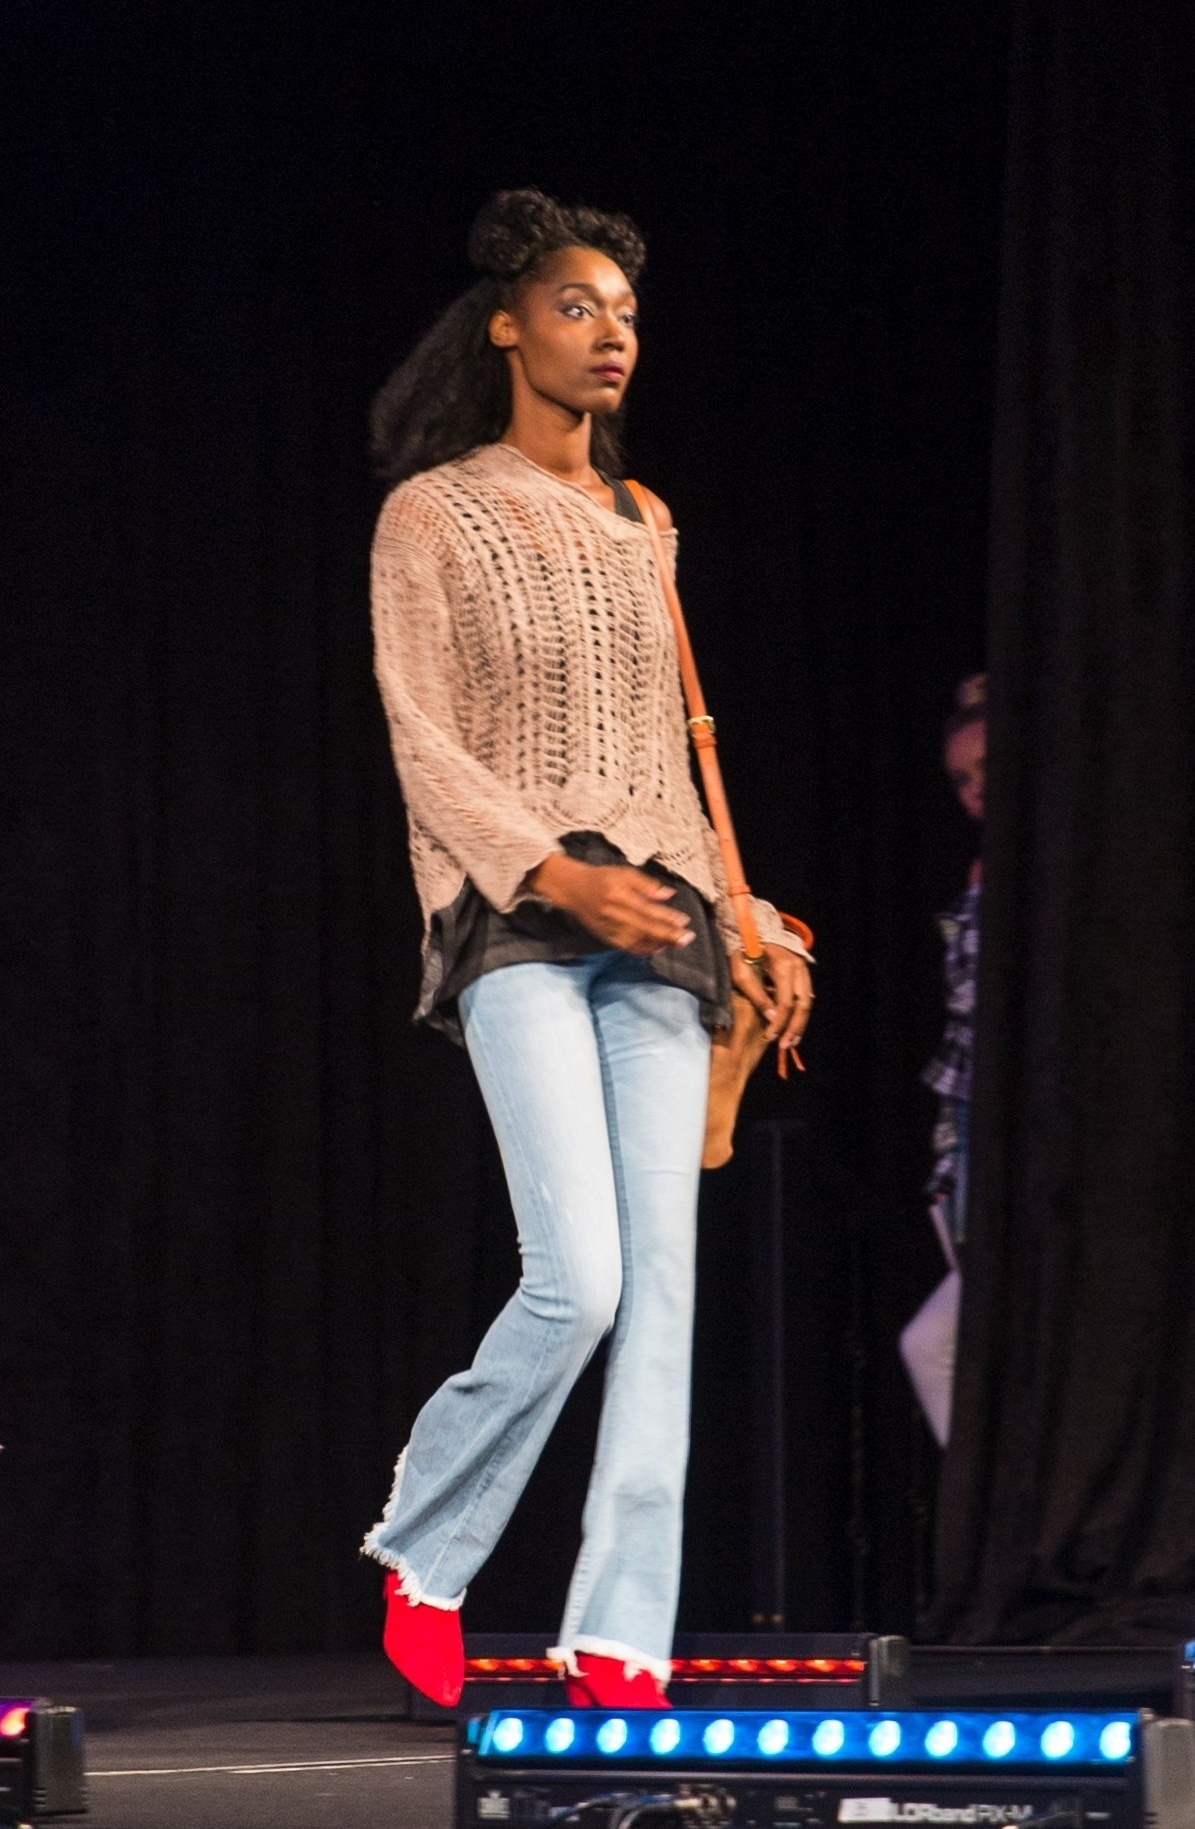 Woman modeling the latest fall trends with Flying Monkey flare denim and hot red booties on the runway.